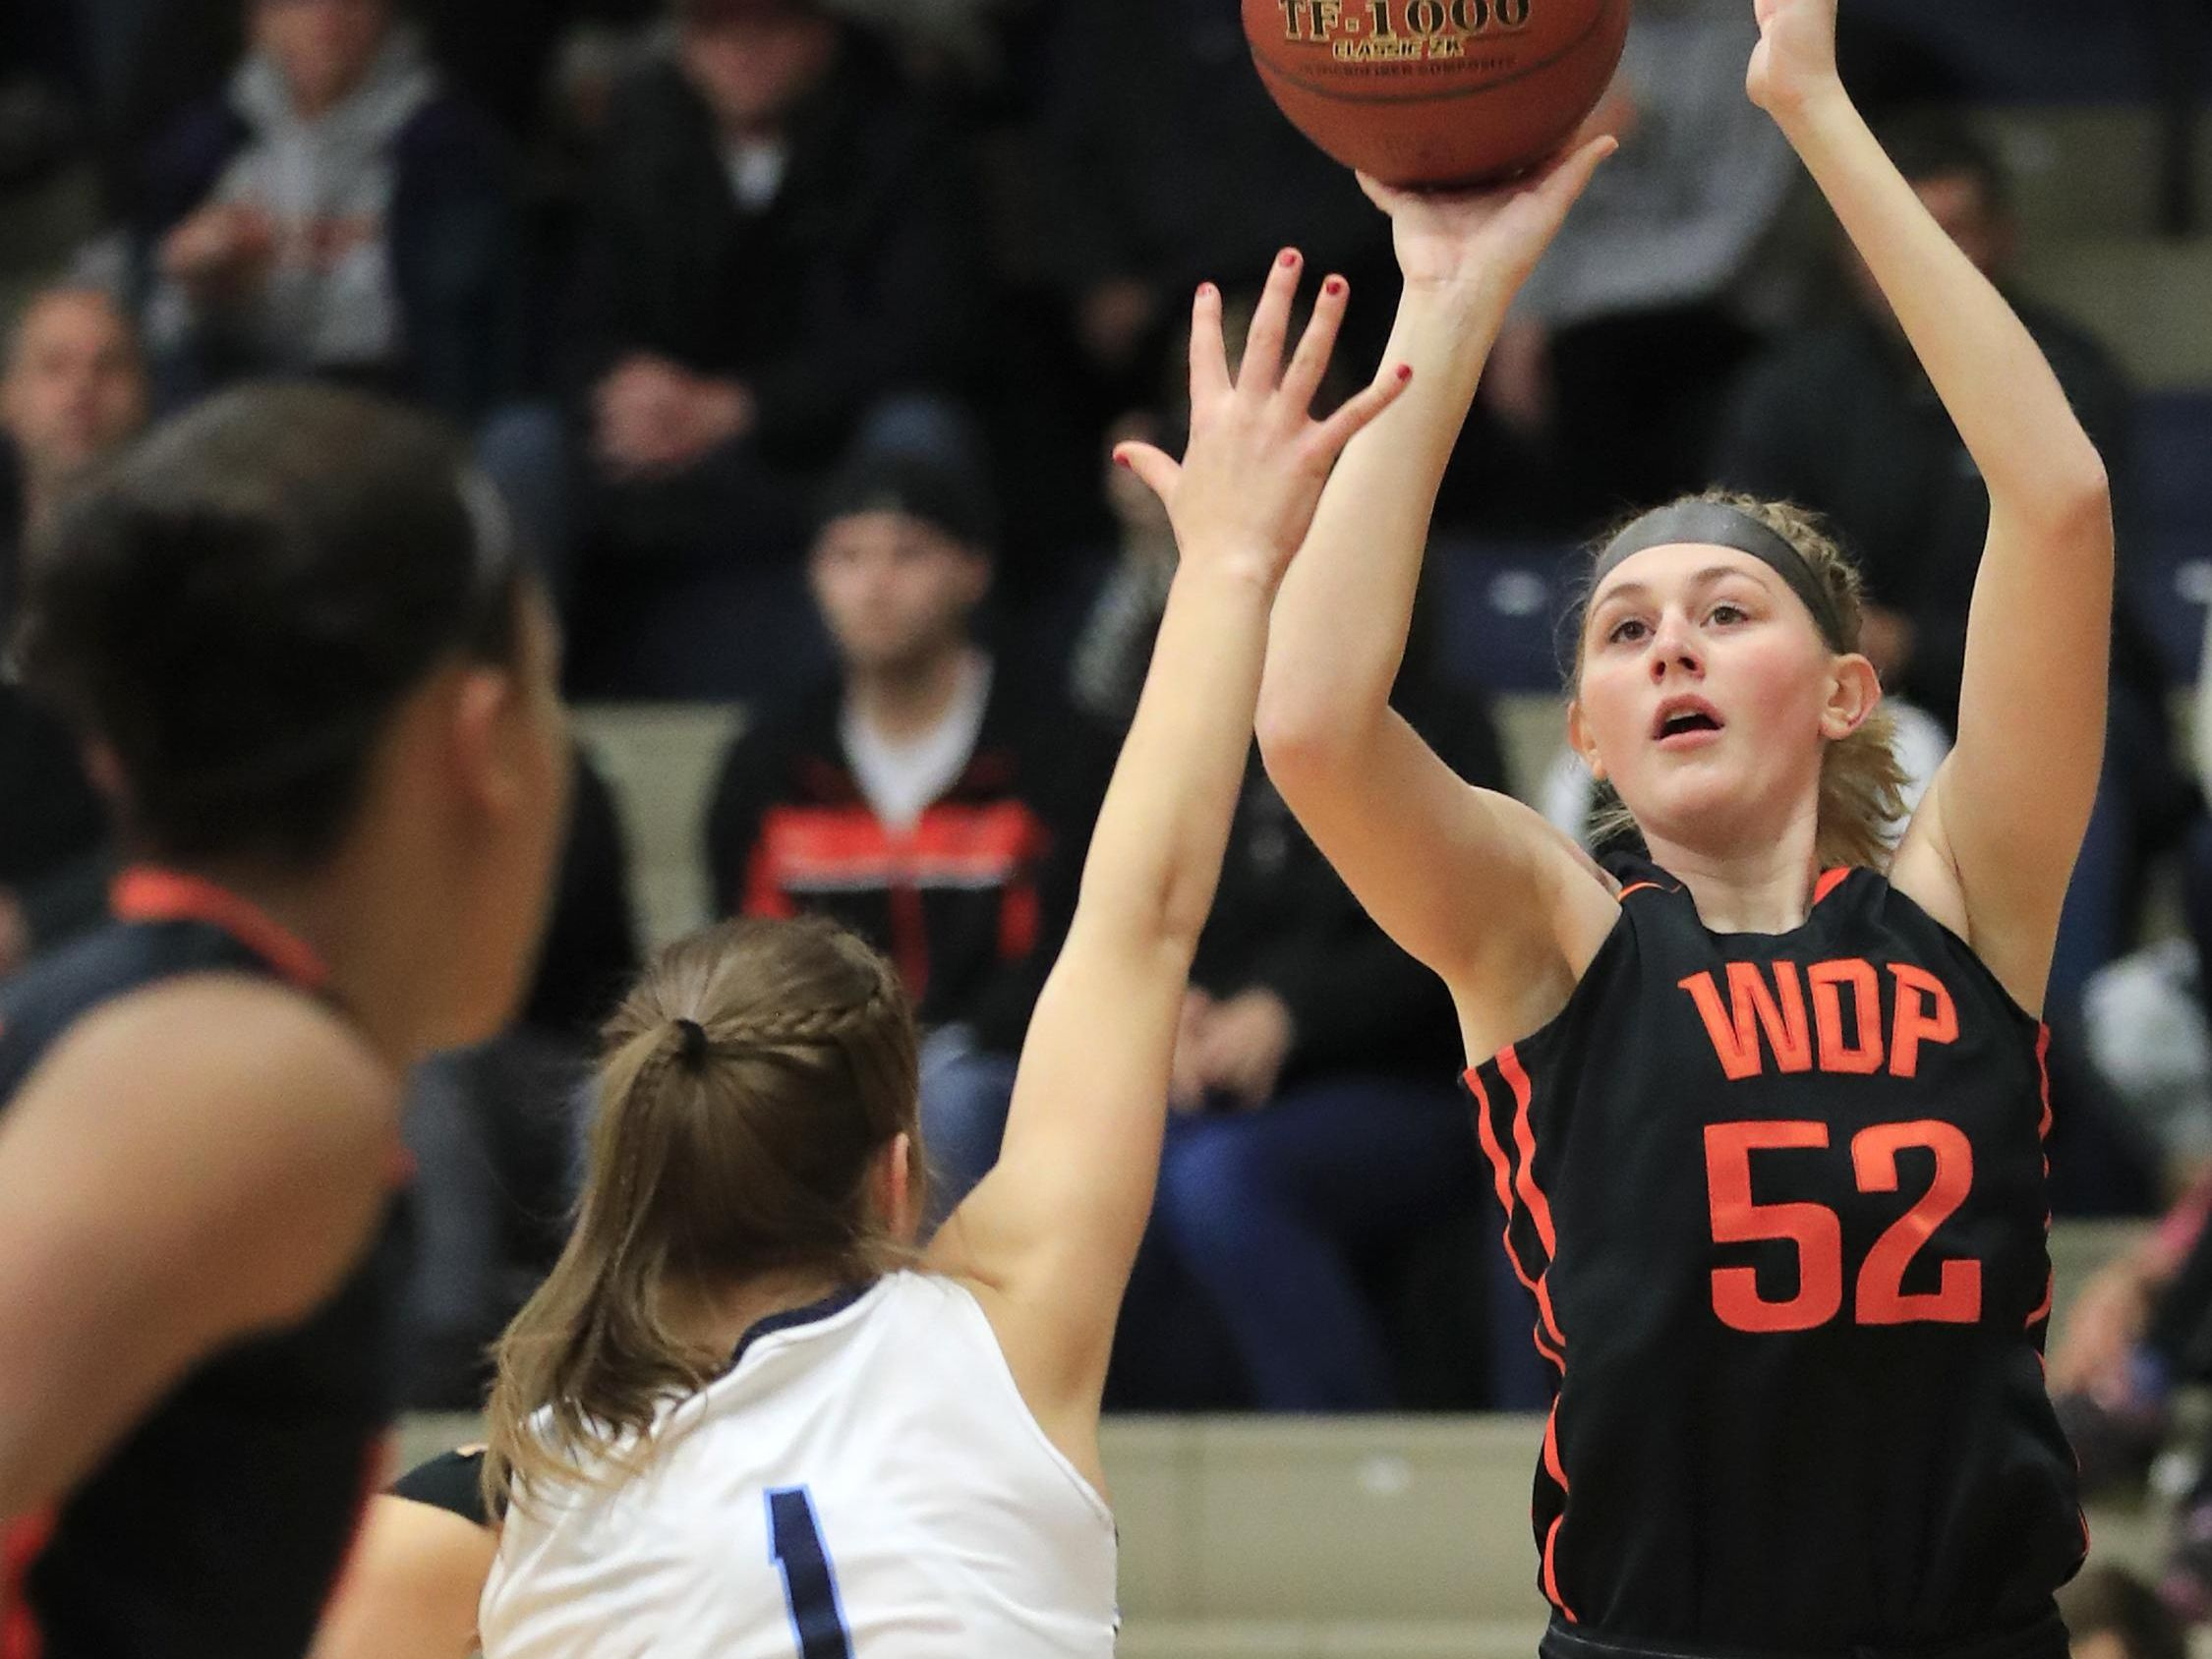 West De Pere's Hannah Stefaniak (52) shoots over Bay Port's Maddie Re (1) at on Dec. 30 at Bay Port High School. Stefaniak has helped the Phantoms climb the state rankings and maintain a 3.83 team GPA.